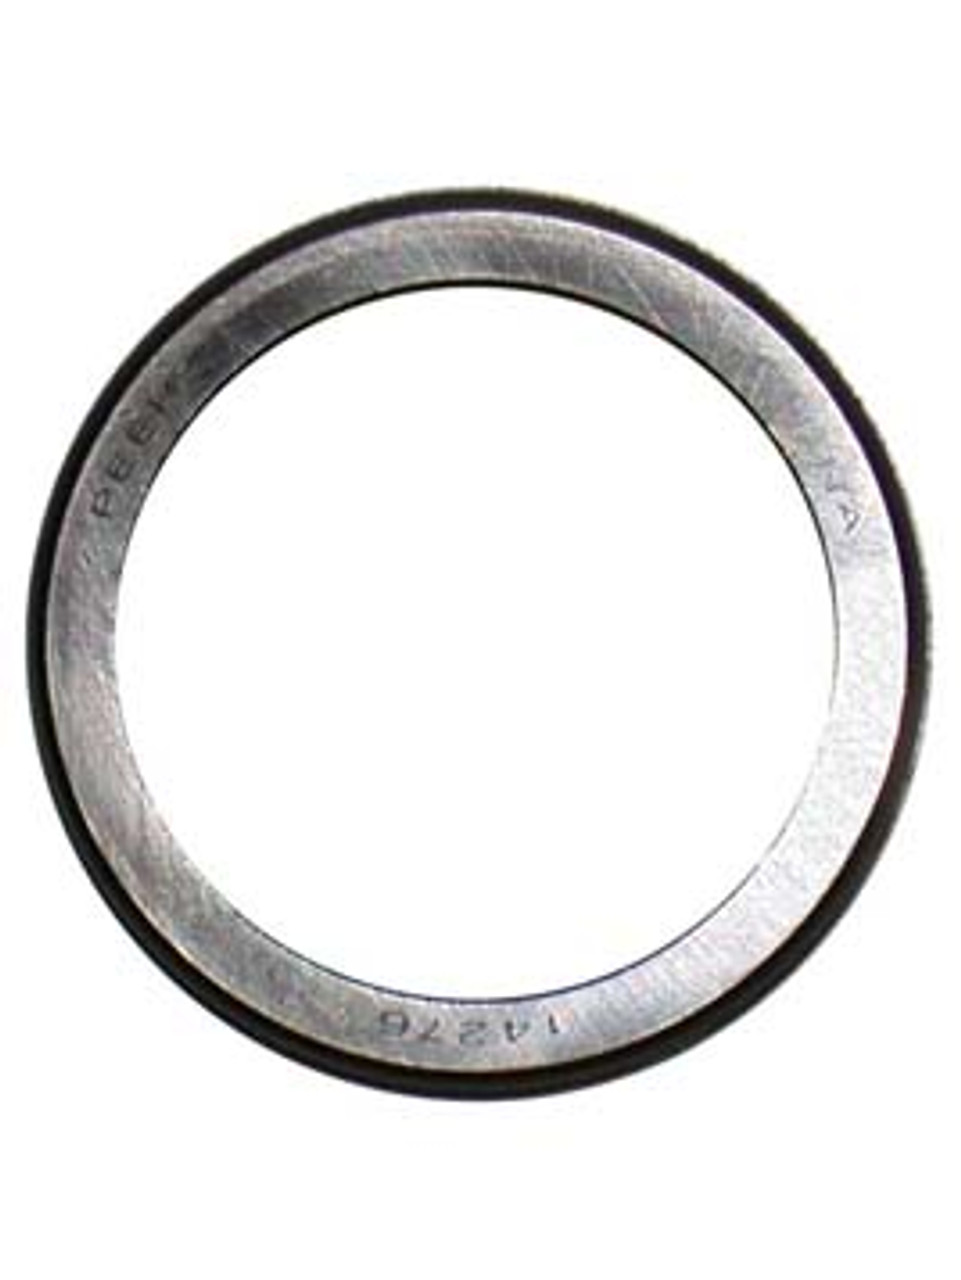 2420 --- Race (Cup) for Bearing # 02475